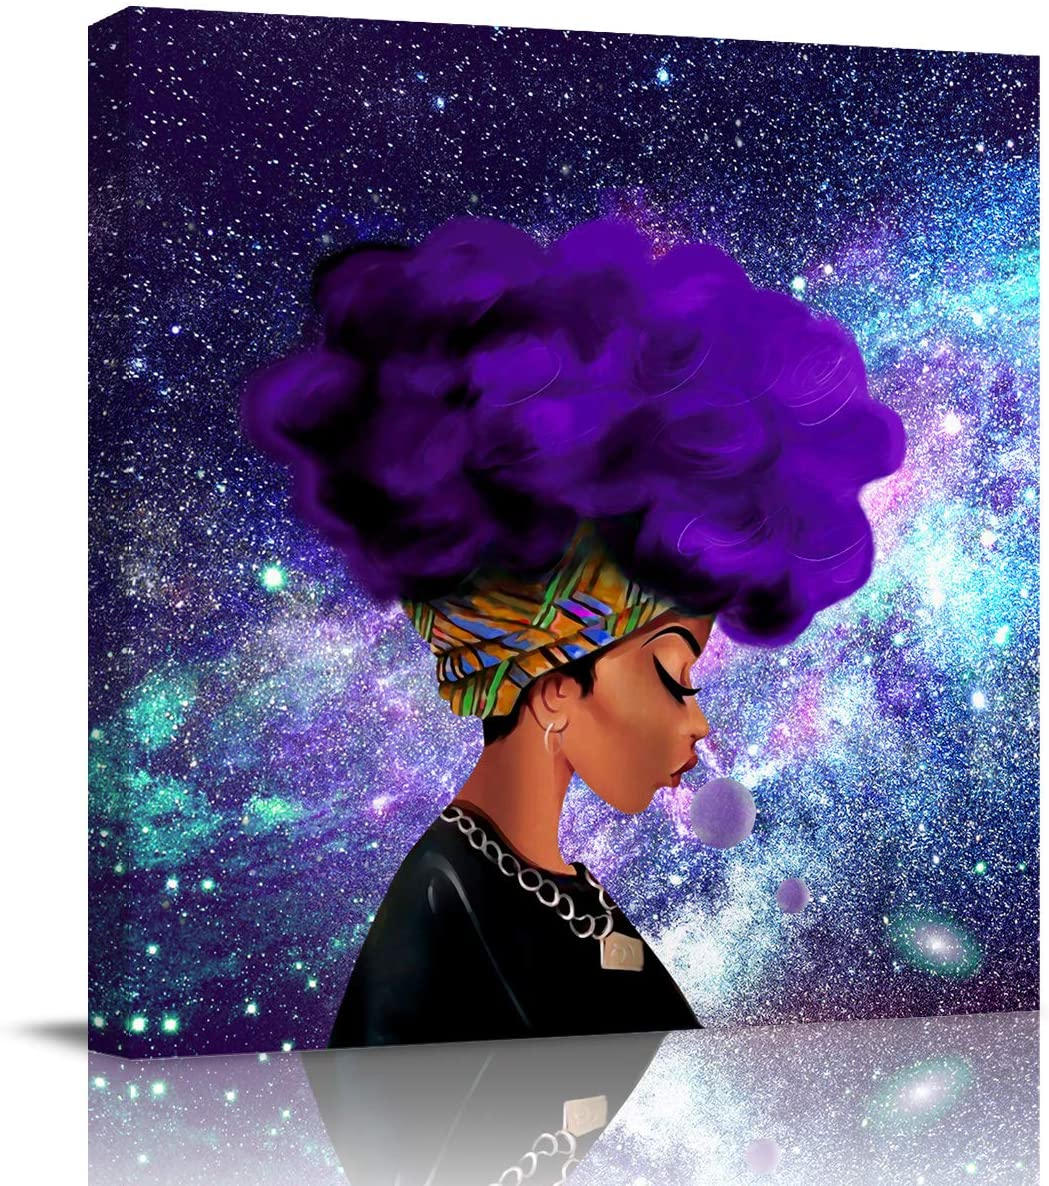 Sailground Canvas Wall Art Paintings Afro African American Woman Lady Purple Galaxy Space Square Abstract Artwork Wall Decor Framed for Home Decoration Ready to Hang, 12x12 inch